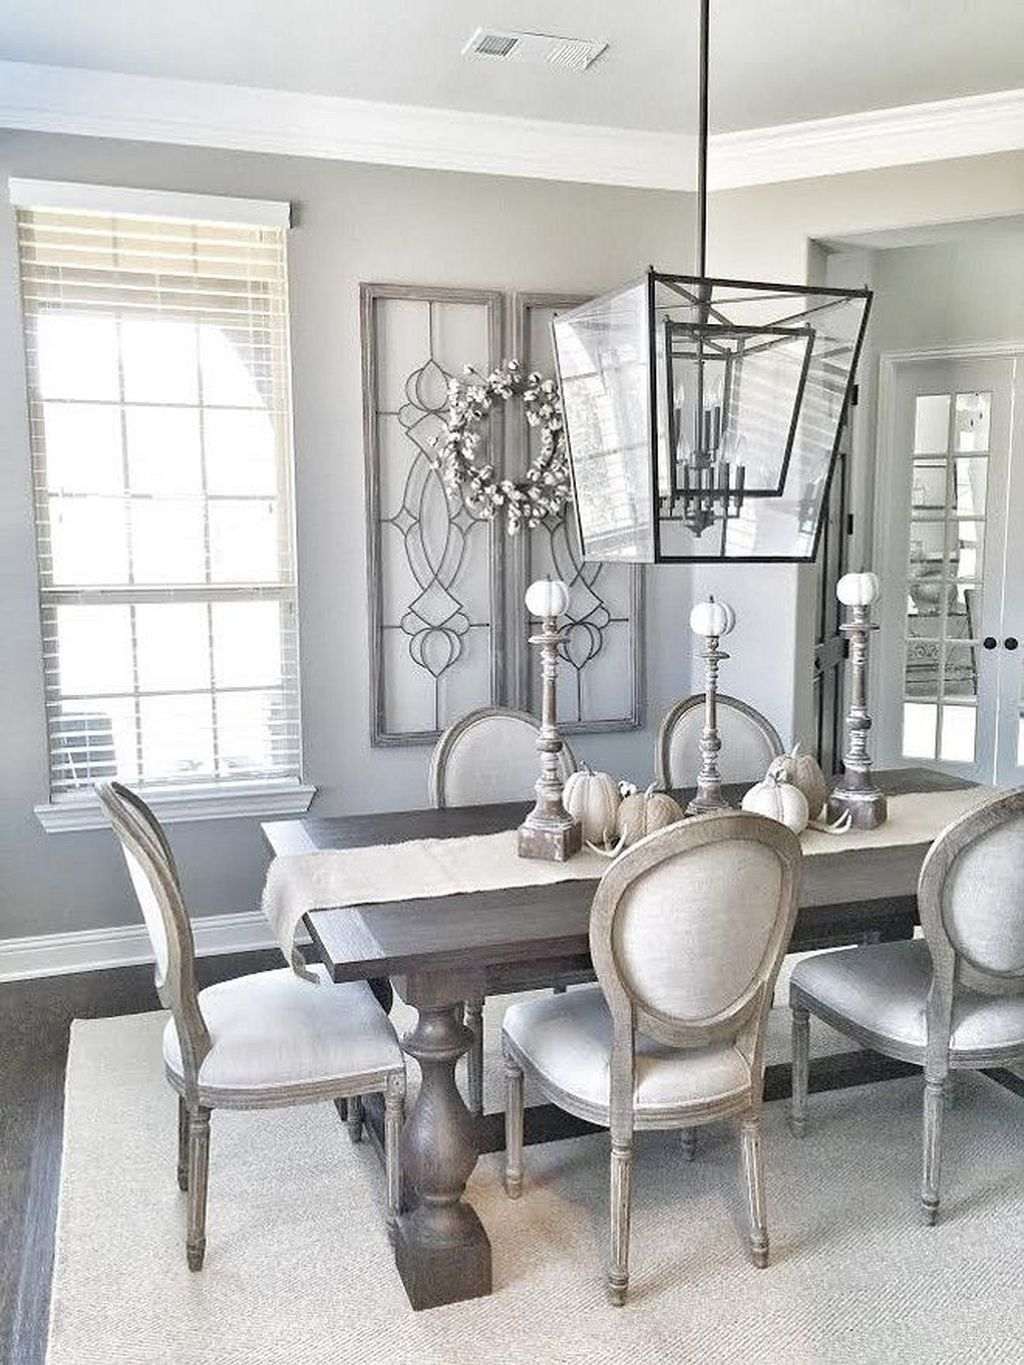 Inspiring Country Theme Dining Room Design With Farmhouse Table 18